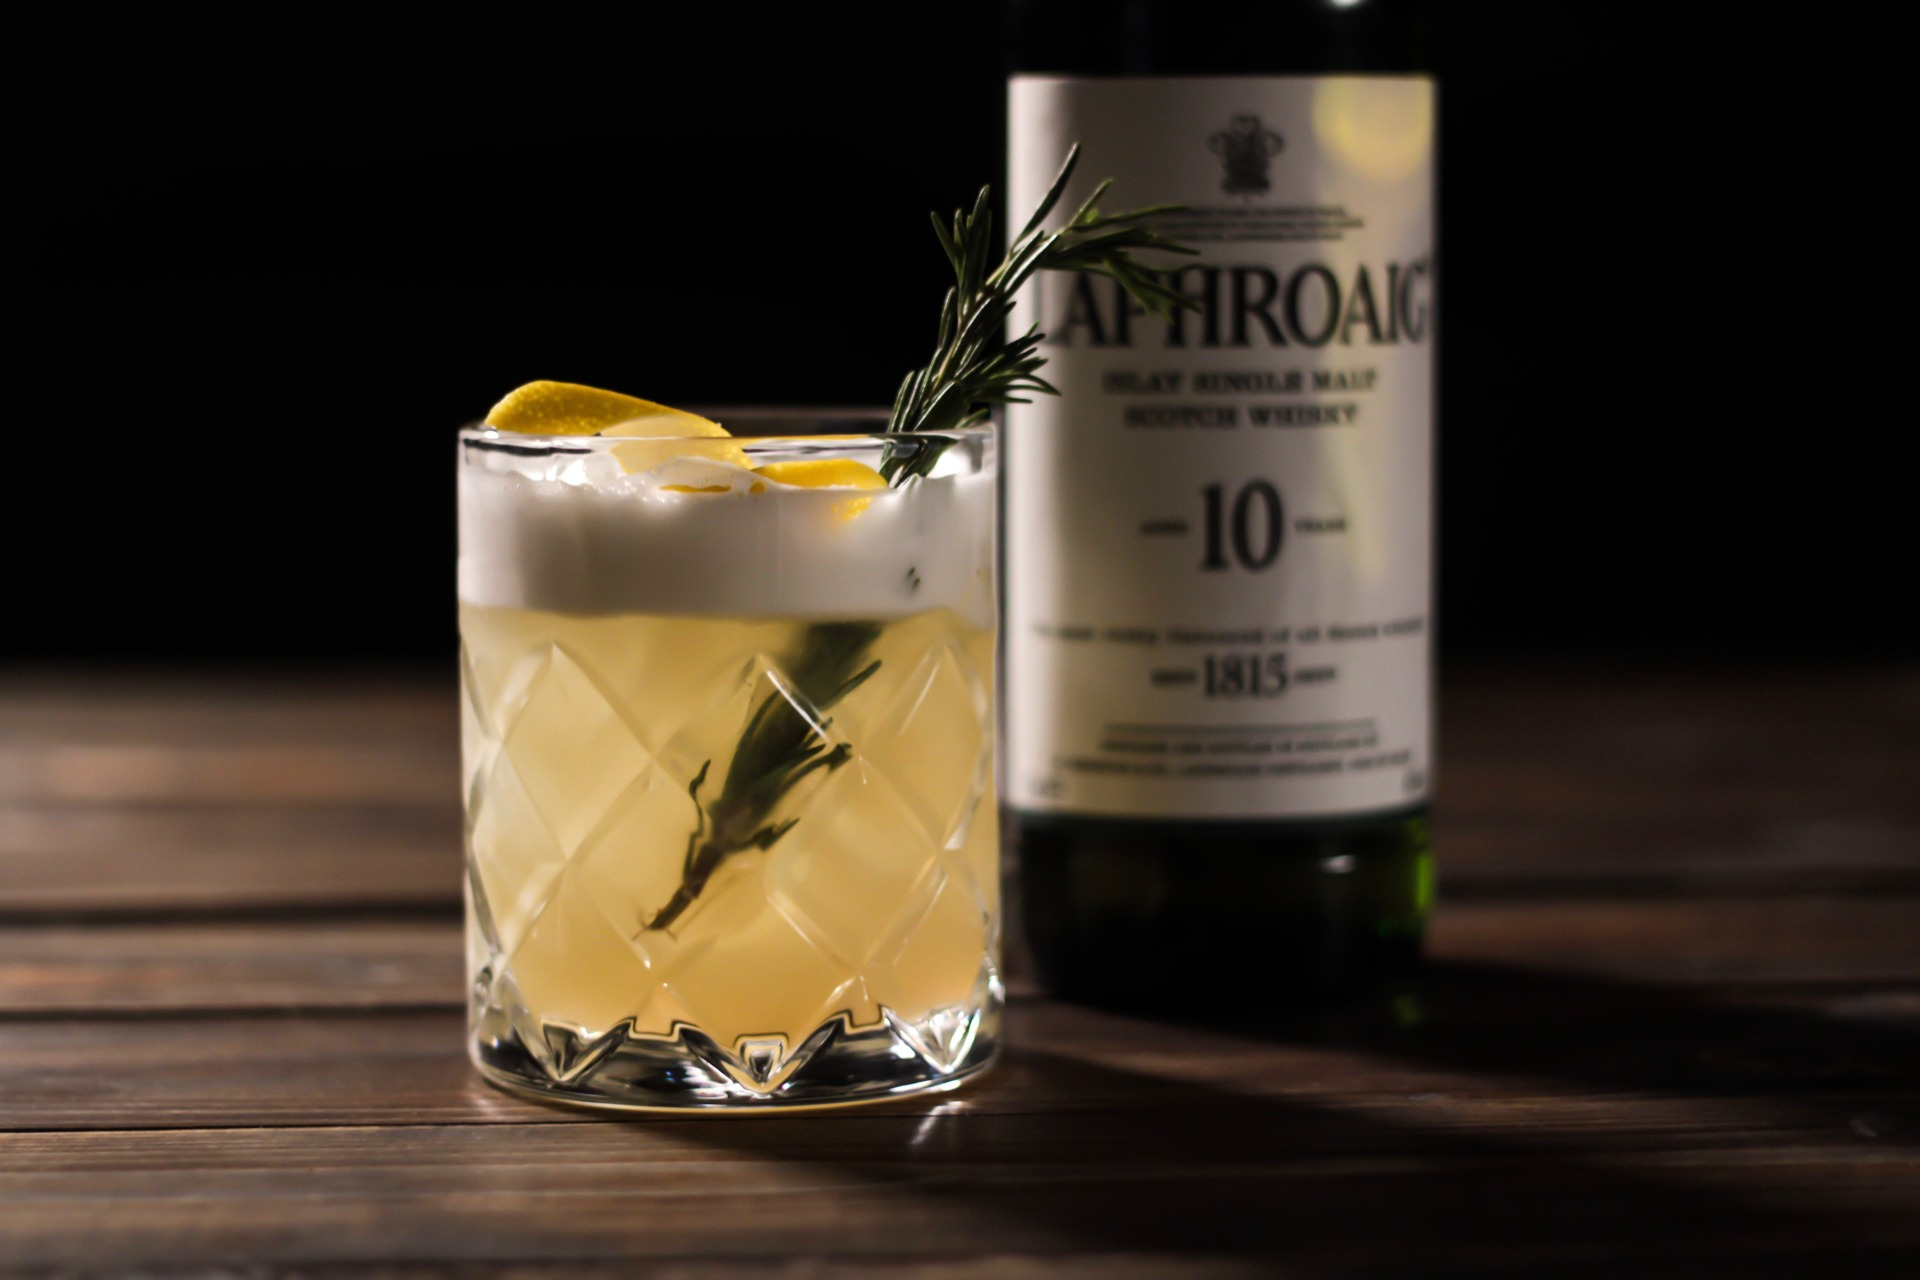 A cocktail of Laphroaig with a bottle in the background